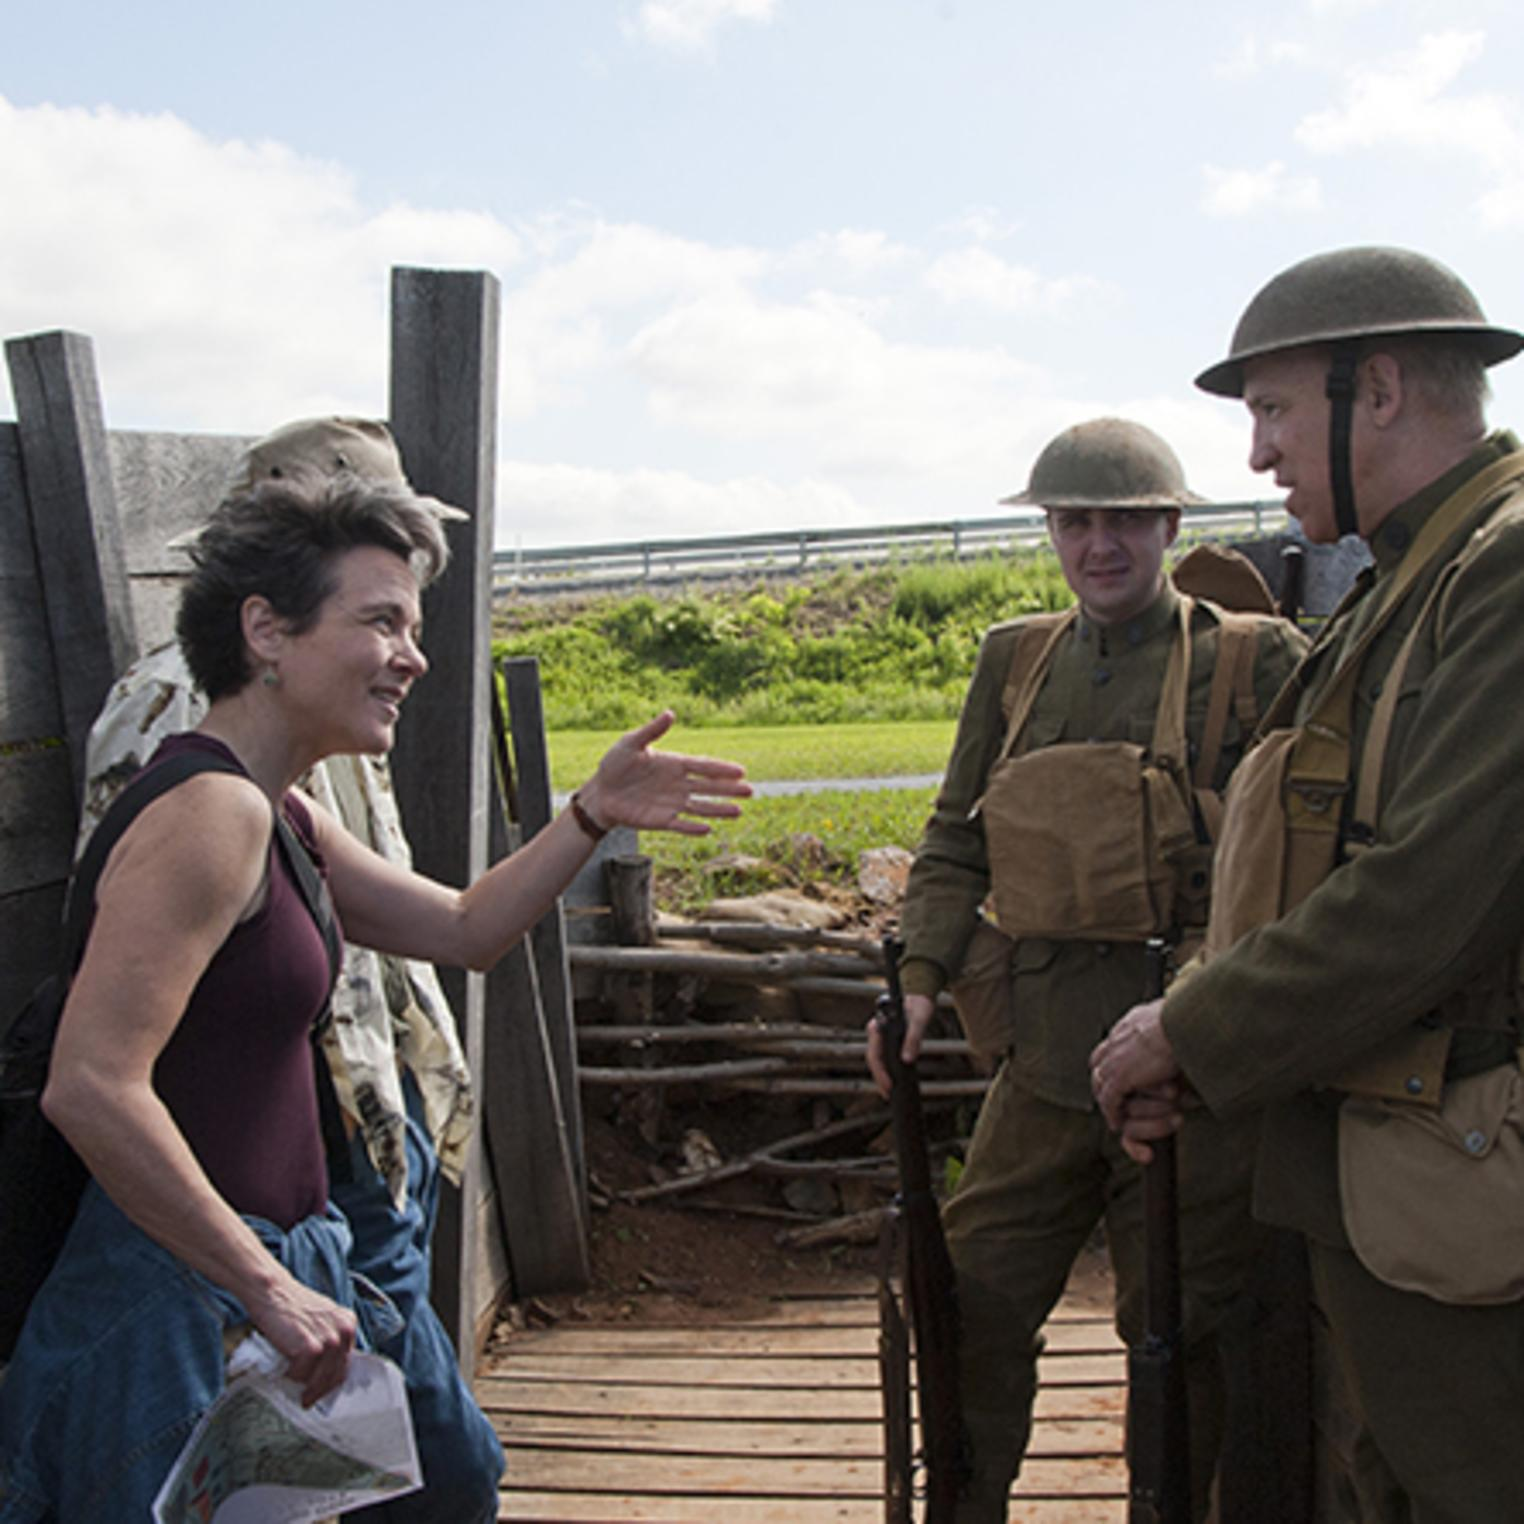 Visitors speak with WWI re-enactors in Allied Trench during Army Heritage Days